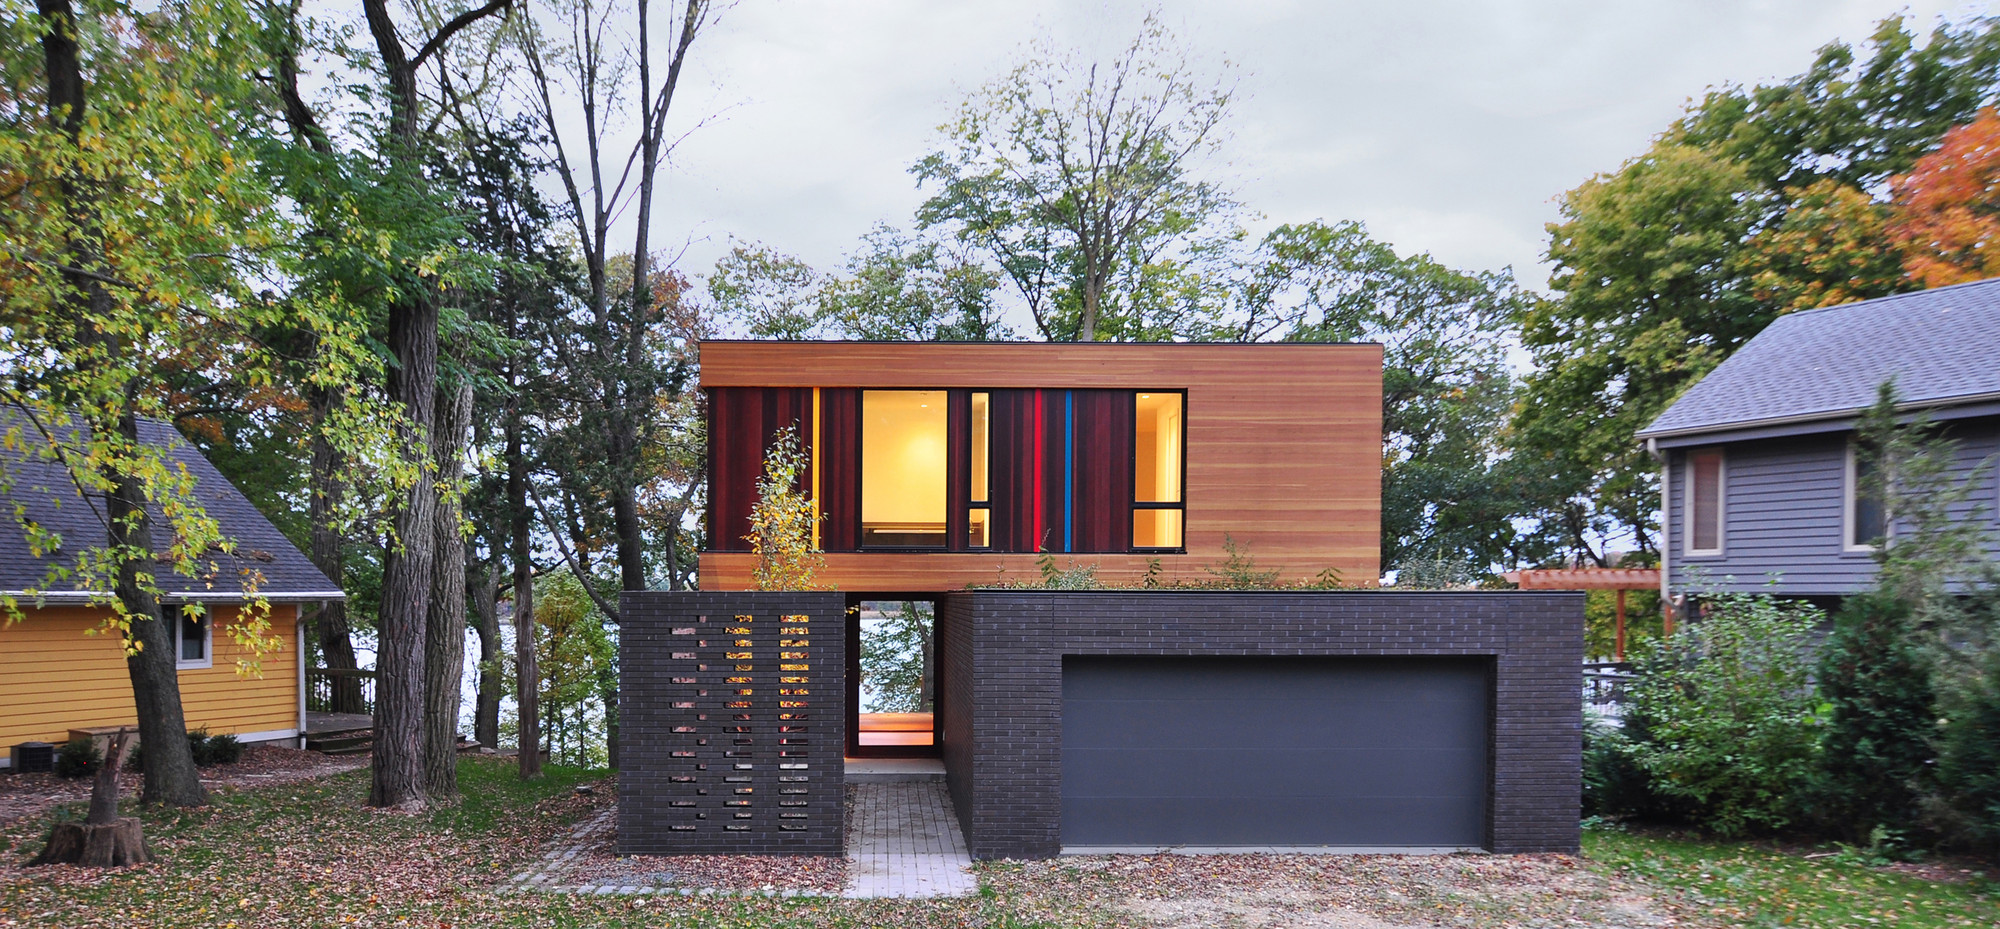 Casa Redaction / Johnsen Schmaling Architects, © John J. Macaulay